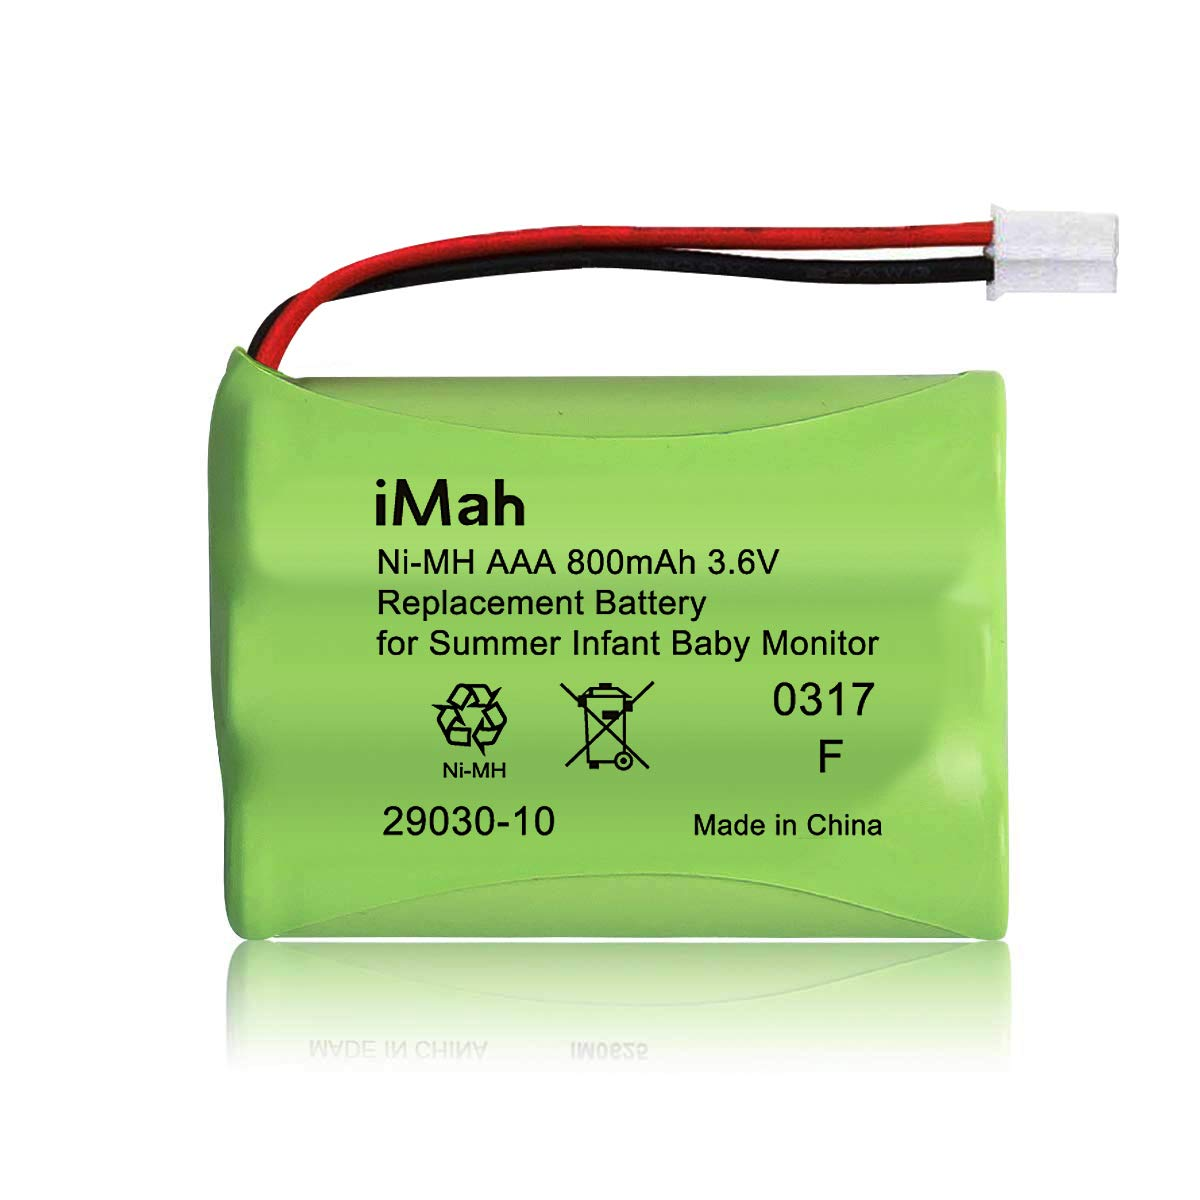 Replacement Ni-MH AAA 800mAh 3.6V Battery 29030-10 for Summer Infant Baby Monitor Wide View 28650 29000 29000A & Clear Sight 29040 29030 Parent Handheld